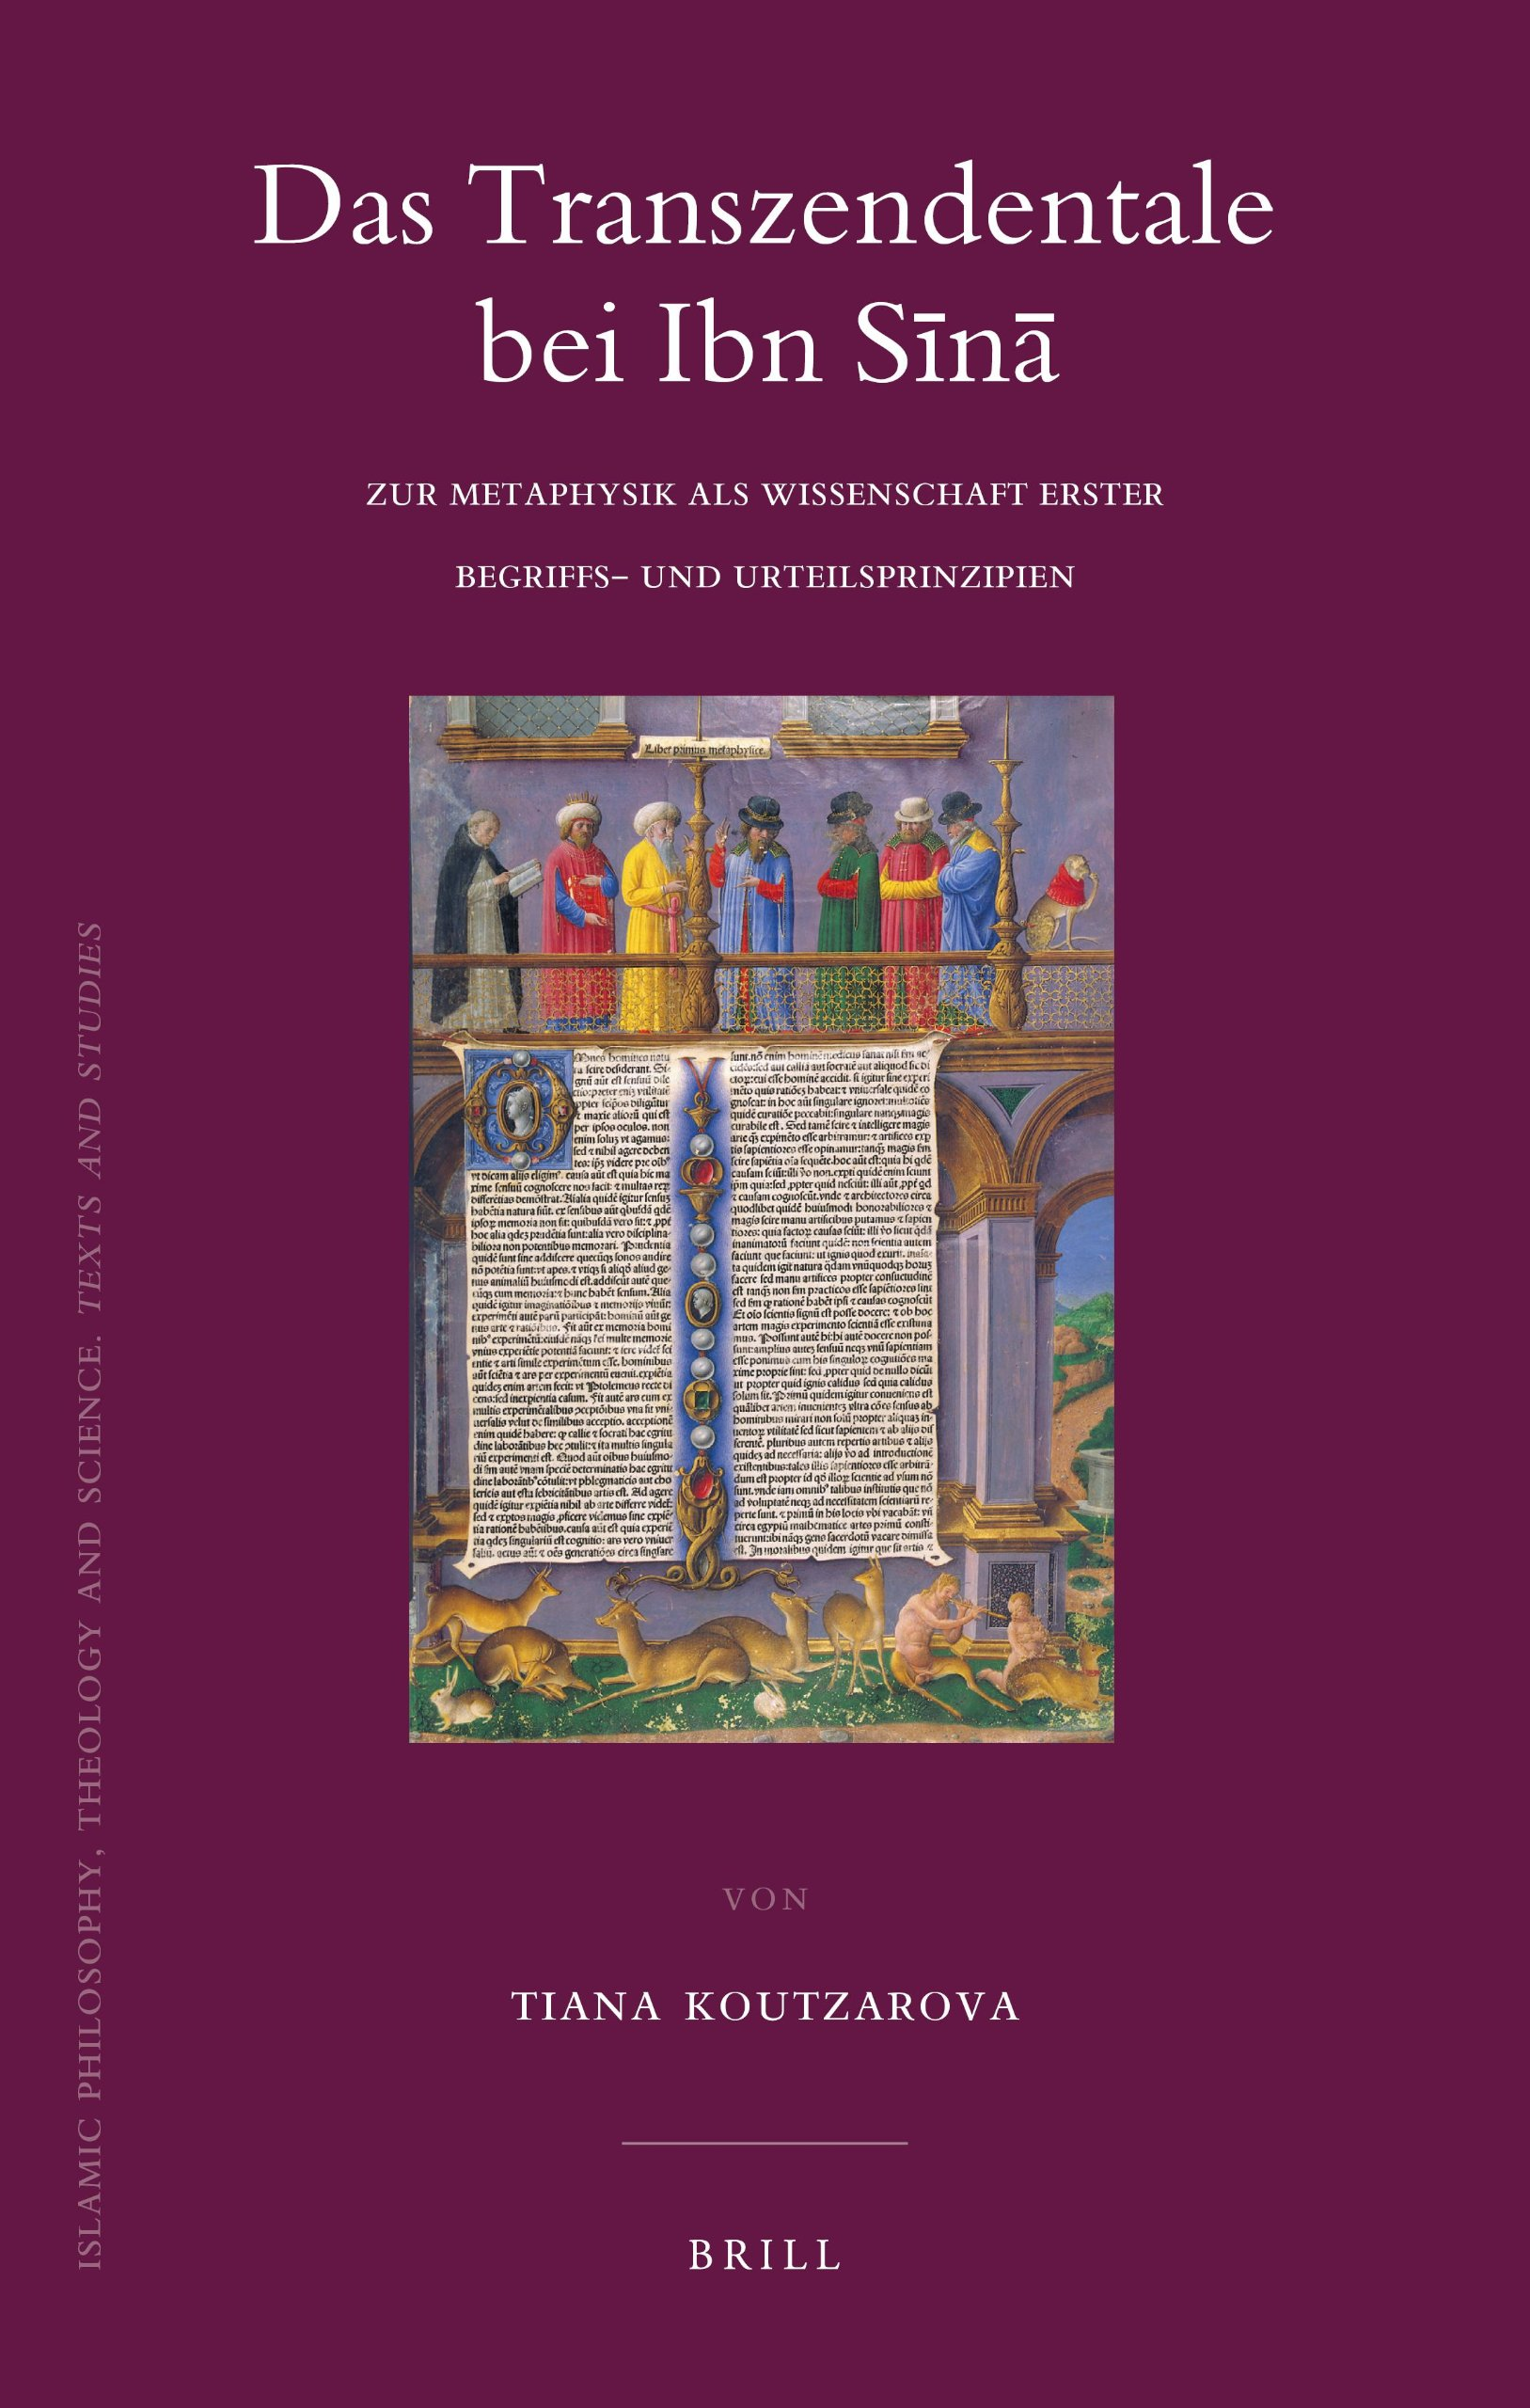 Das Transzendentale bei Ibn Sn (Islamic Philosophy, Theology and Science. Texts and Studies) (German Edition) by Brill